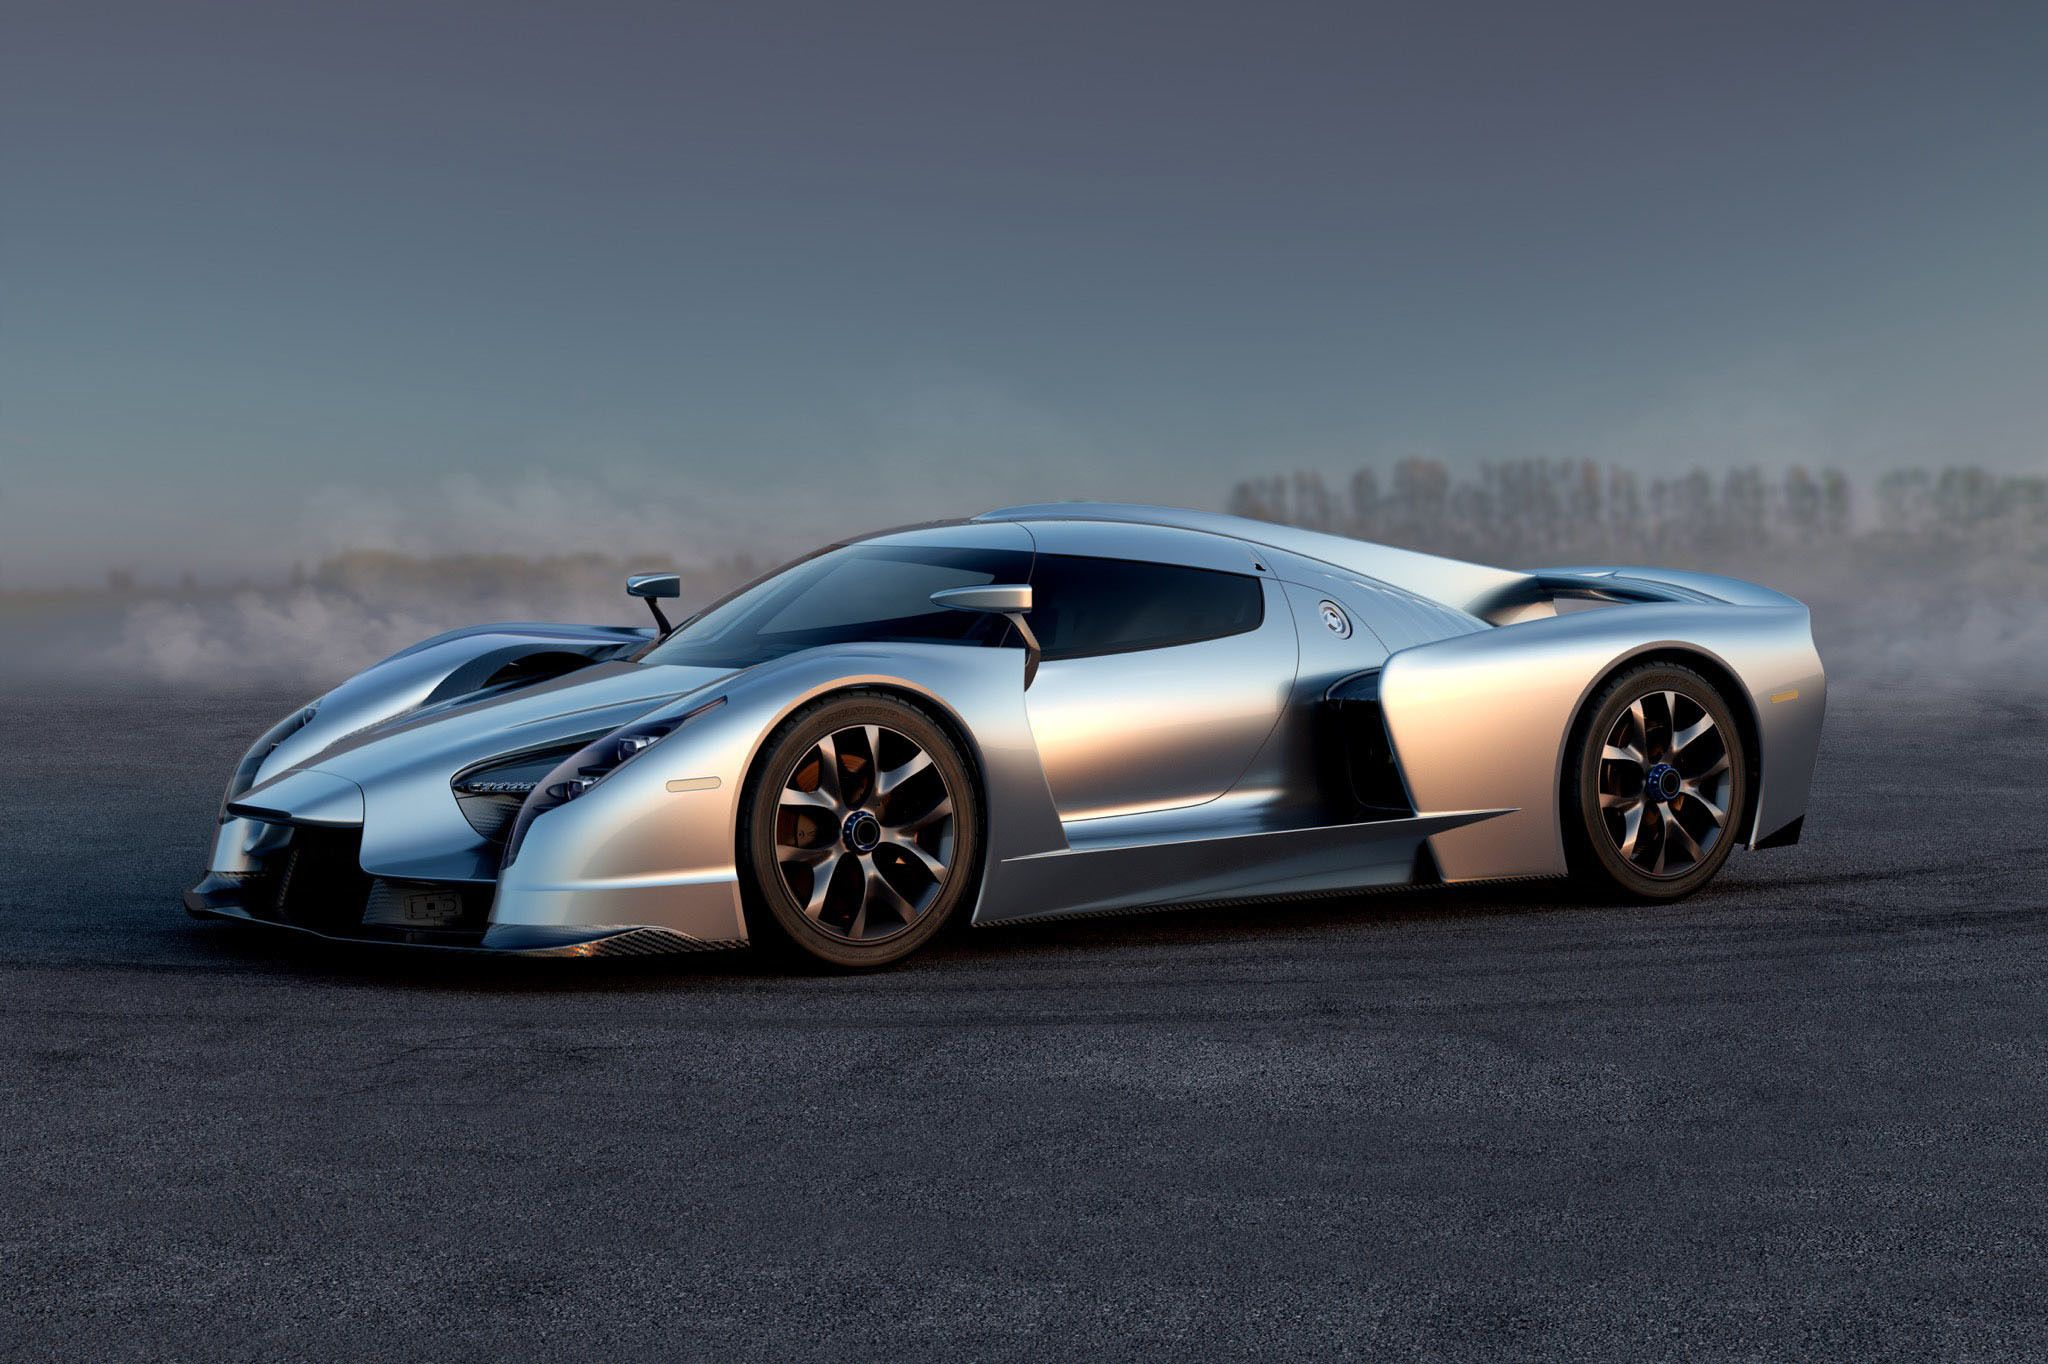 e of the Most Beautiful cars i have ever laid my eyes on Sham